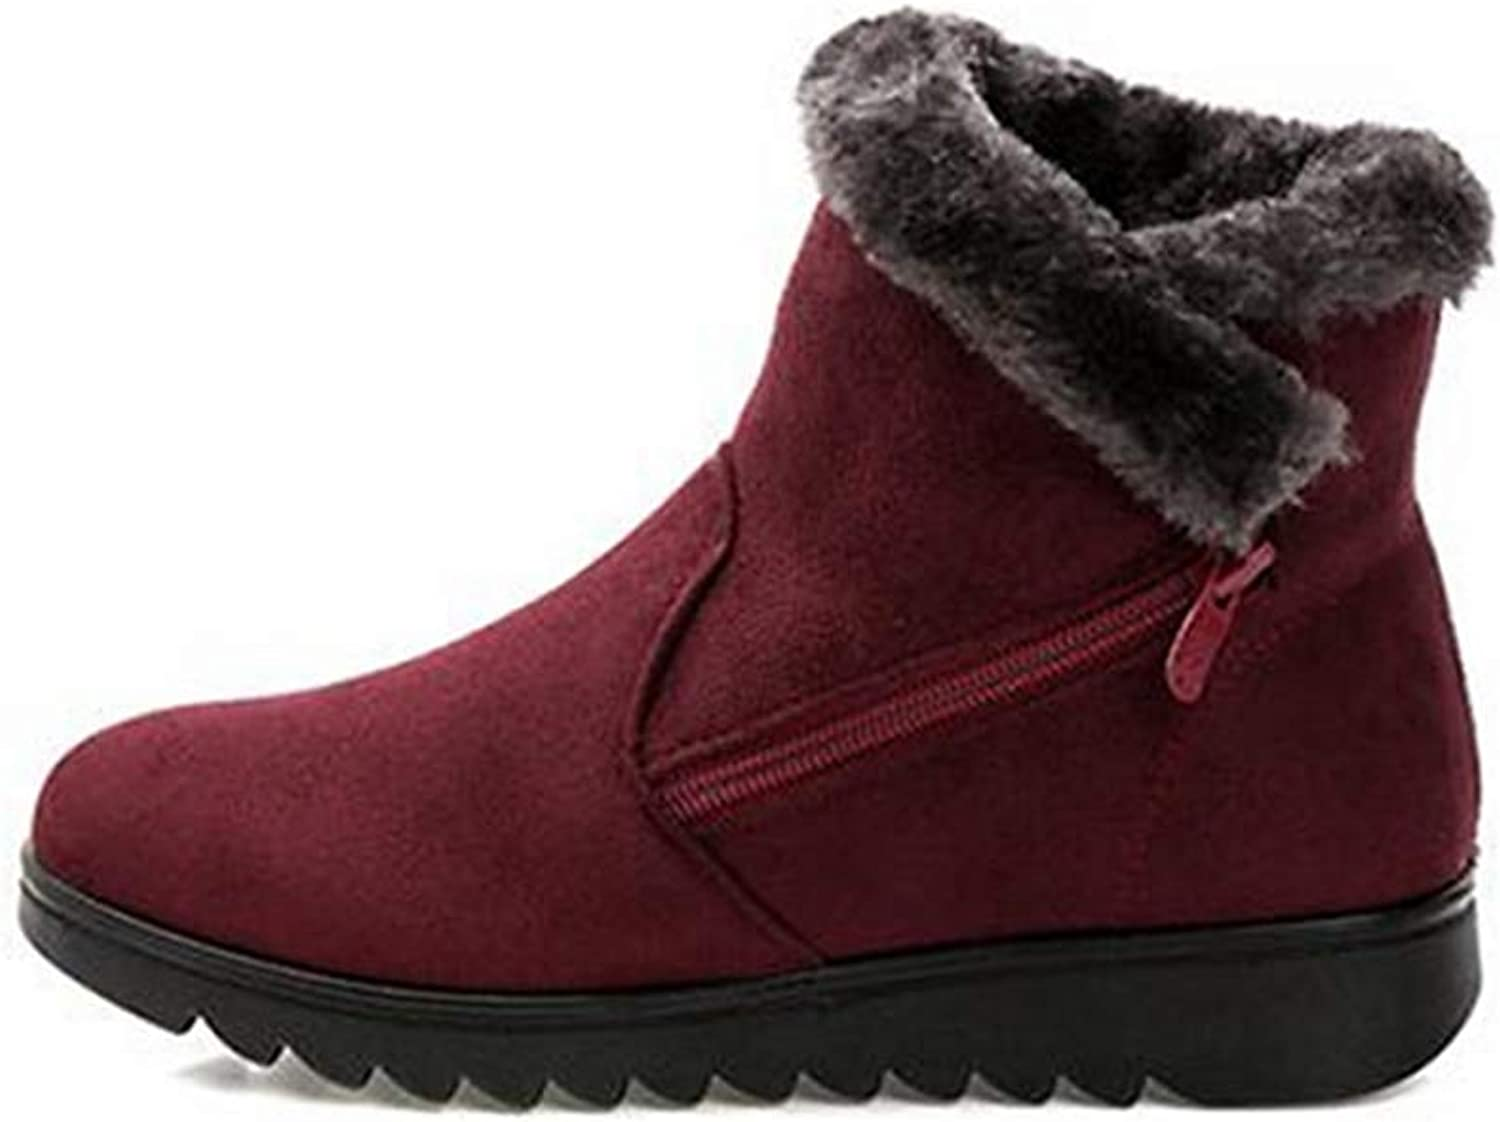 Fay Waters Womens Cute Warm Ankle Boots Platform Low Heel Round Toe Rubber Winter Snow Booties